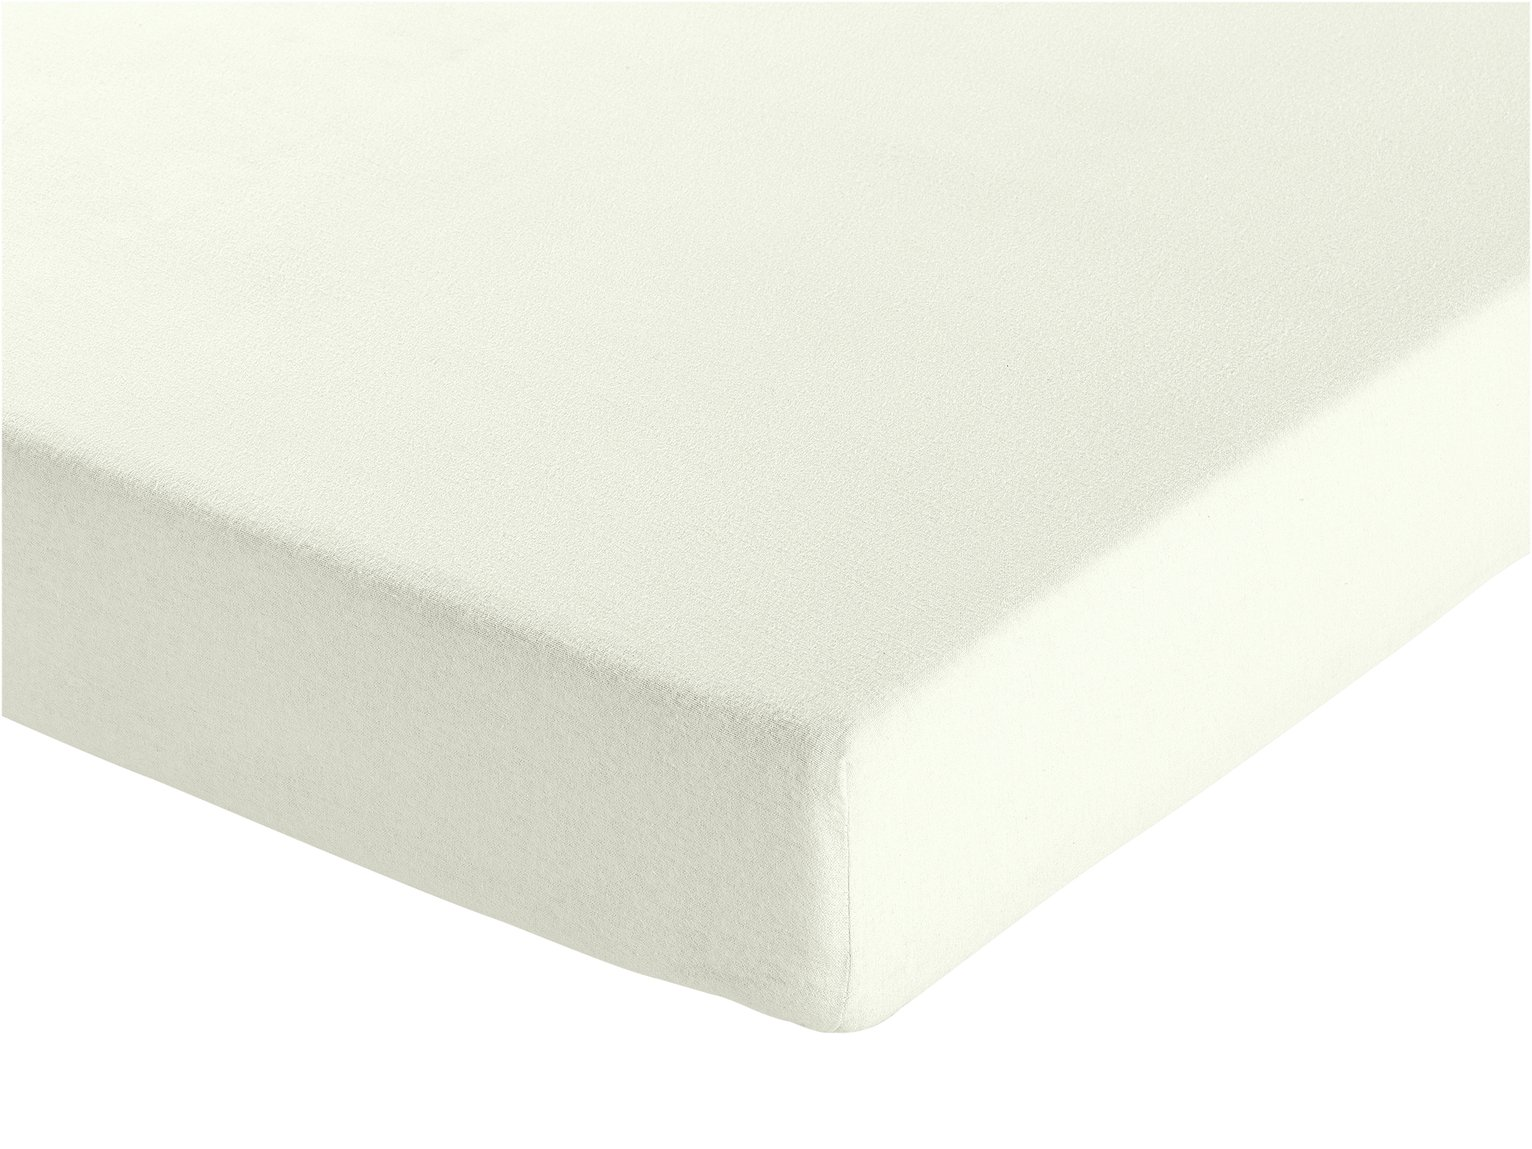 Argos Home Cream Brushed Cotton Fitted Sheet - Kingsize